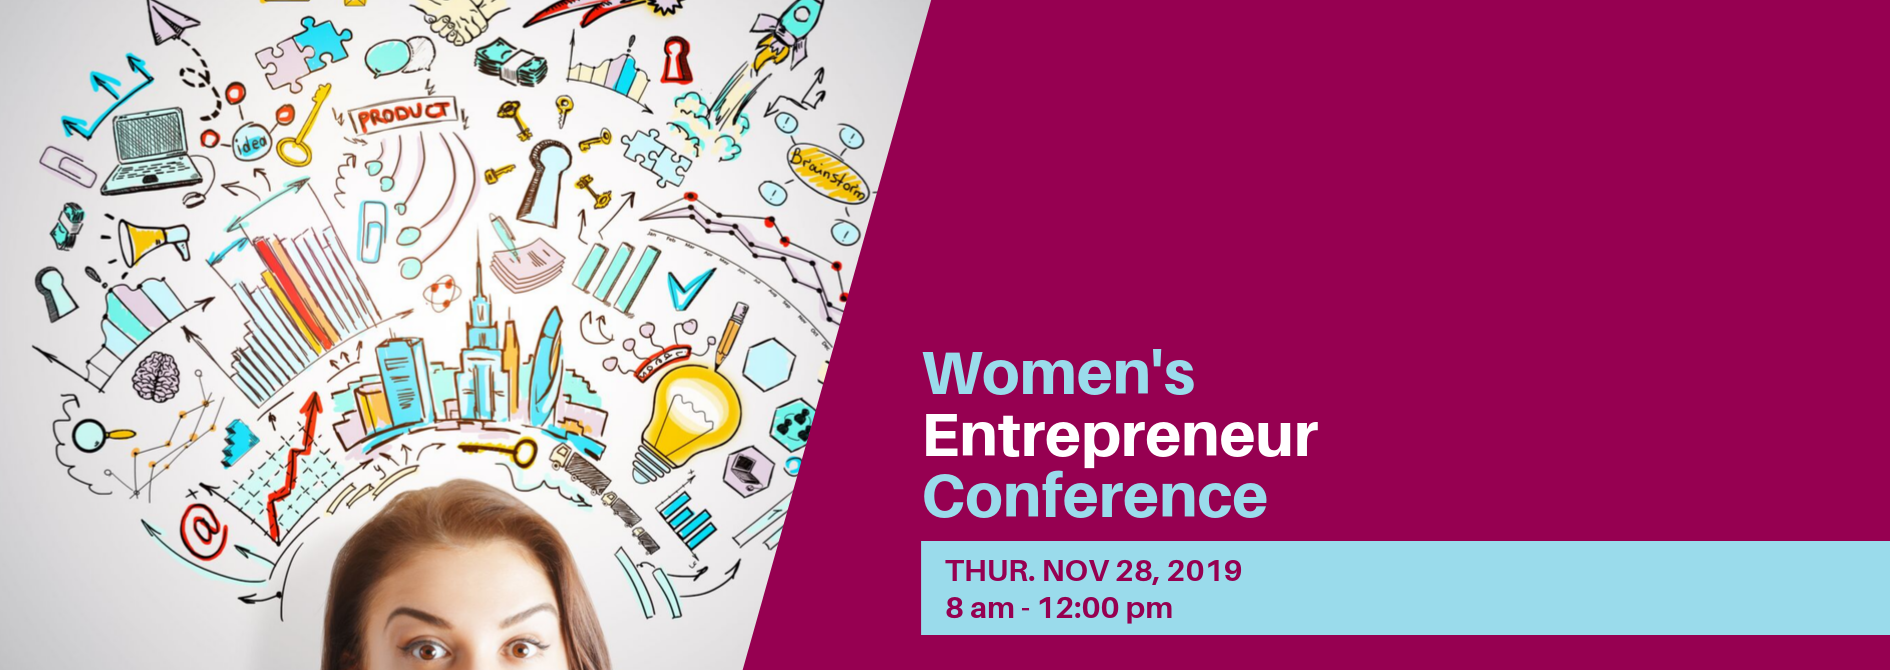 Women's Entrepreneur Conference – Nov 28